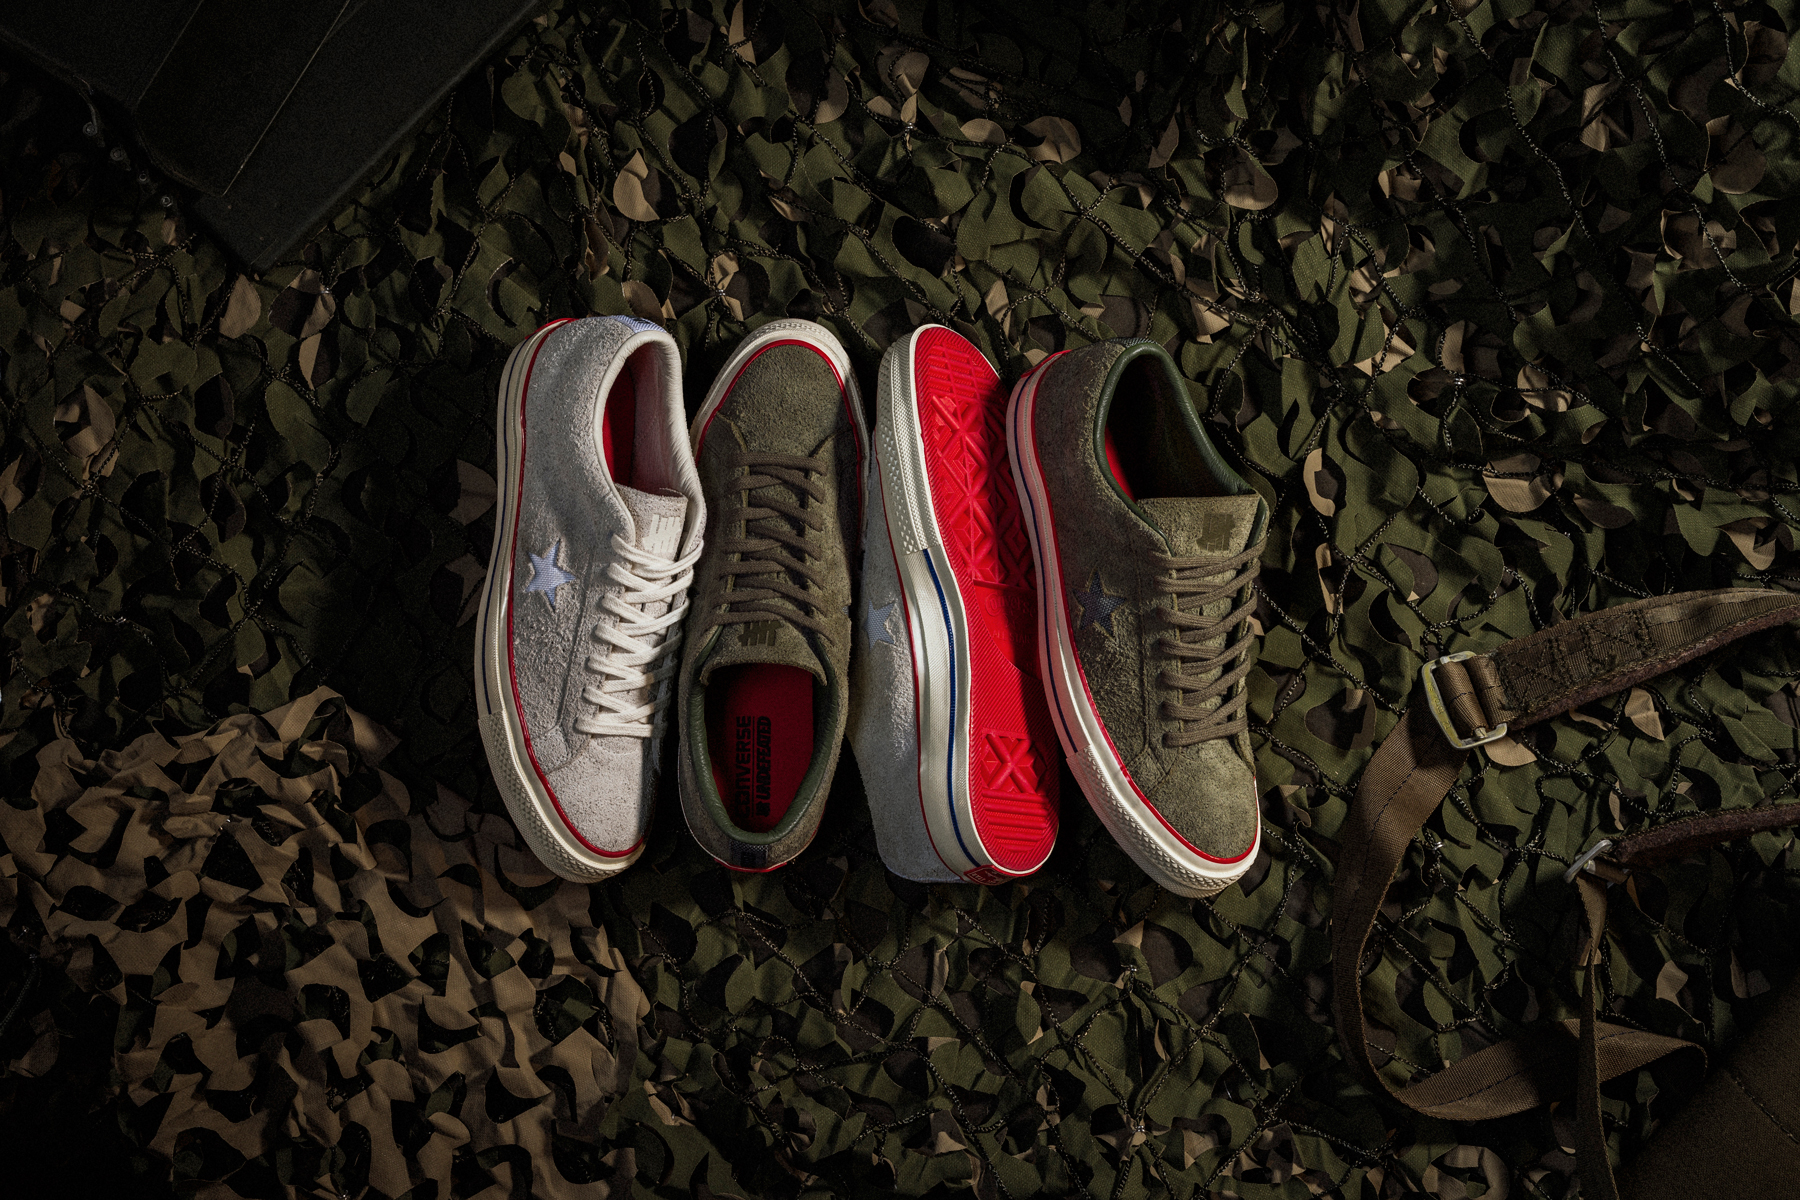 converse-one-star-undftd-01